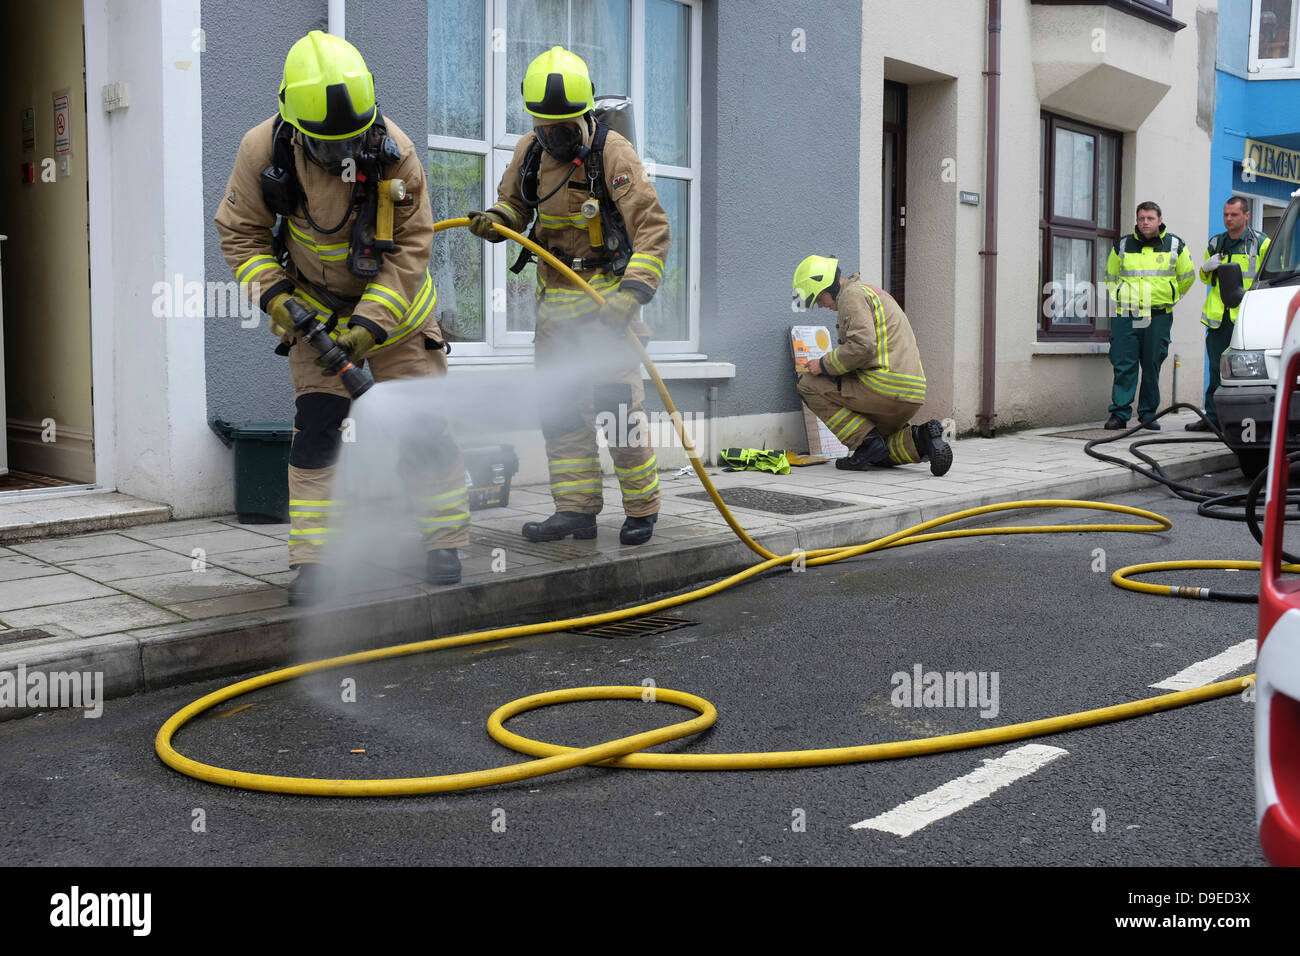 999 Emergency services (firebrigade, ambulance and police) attending a kitchen fire in a student house Aberystwyth - Stock Image